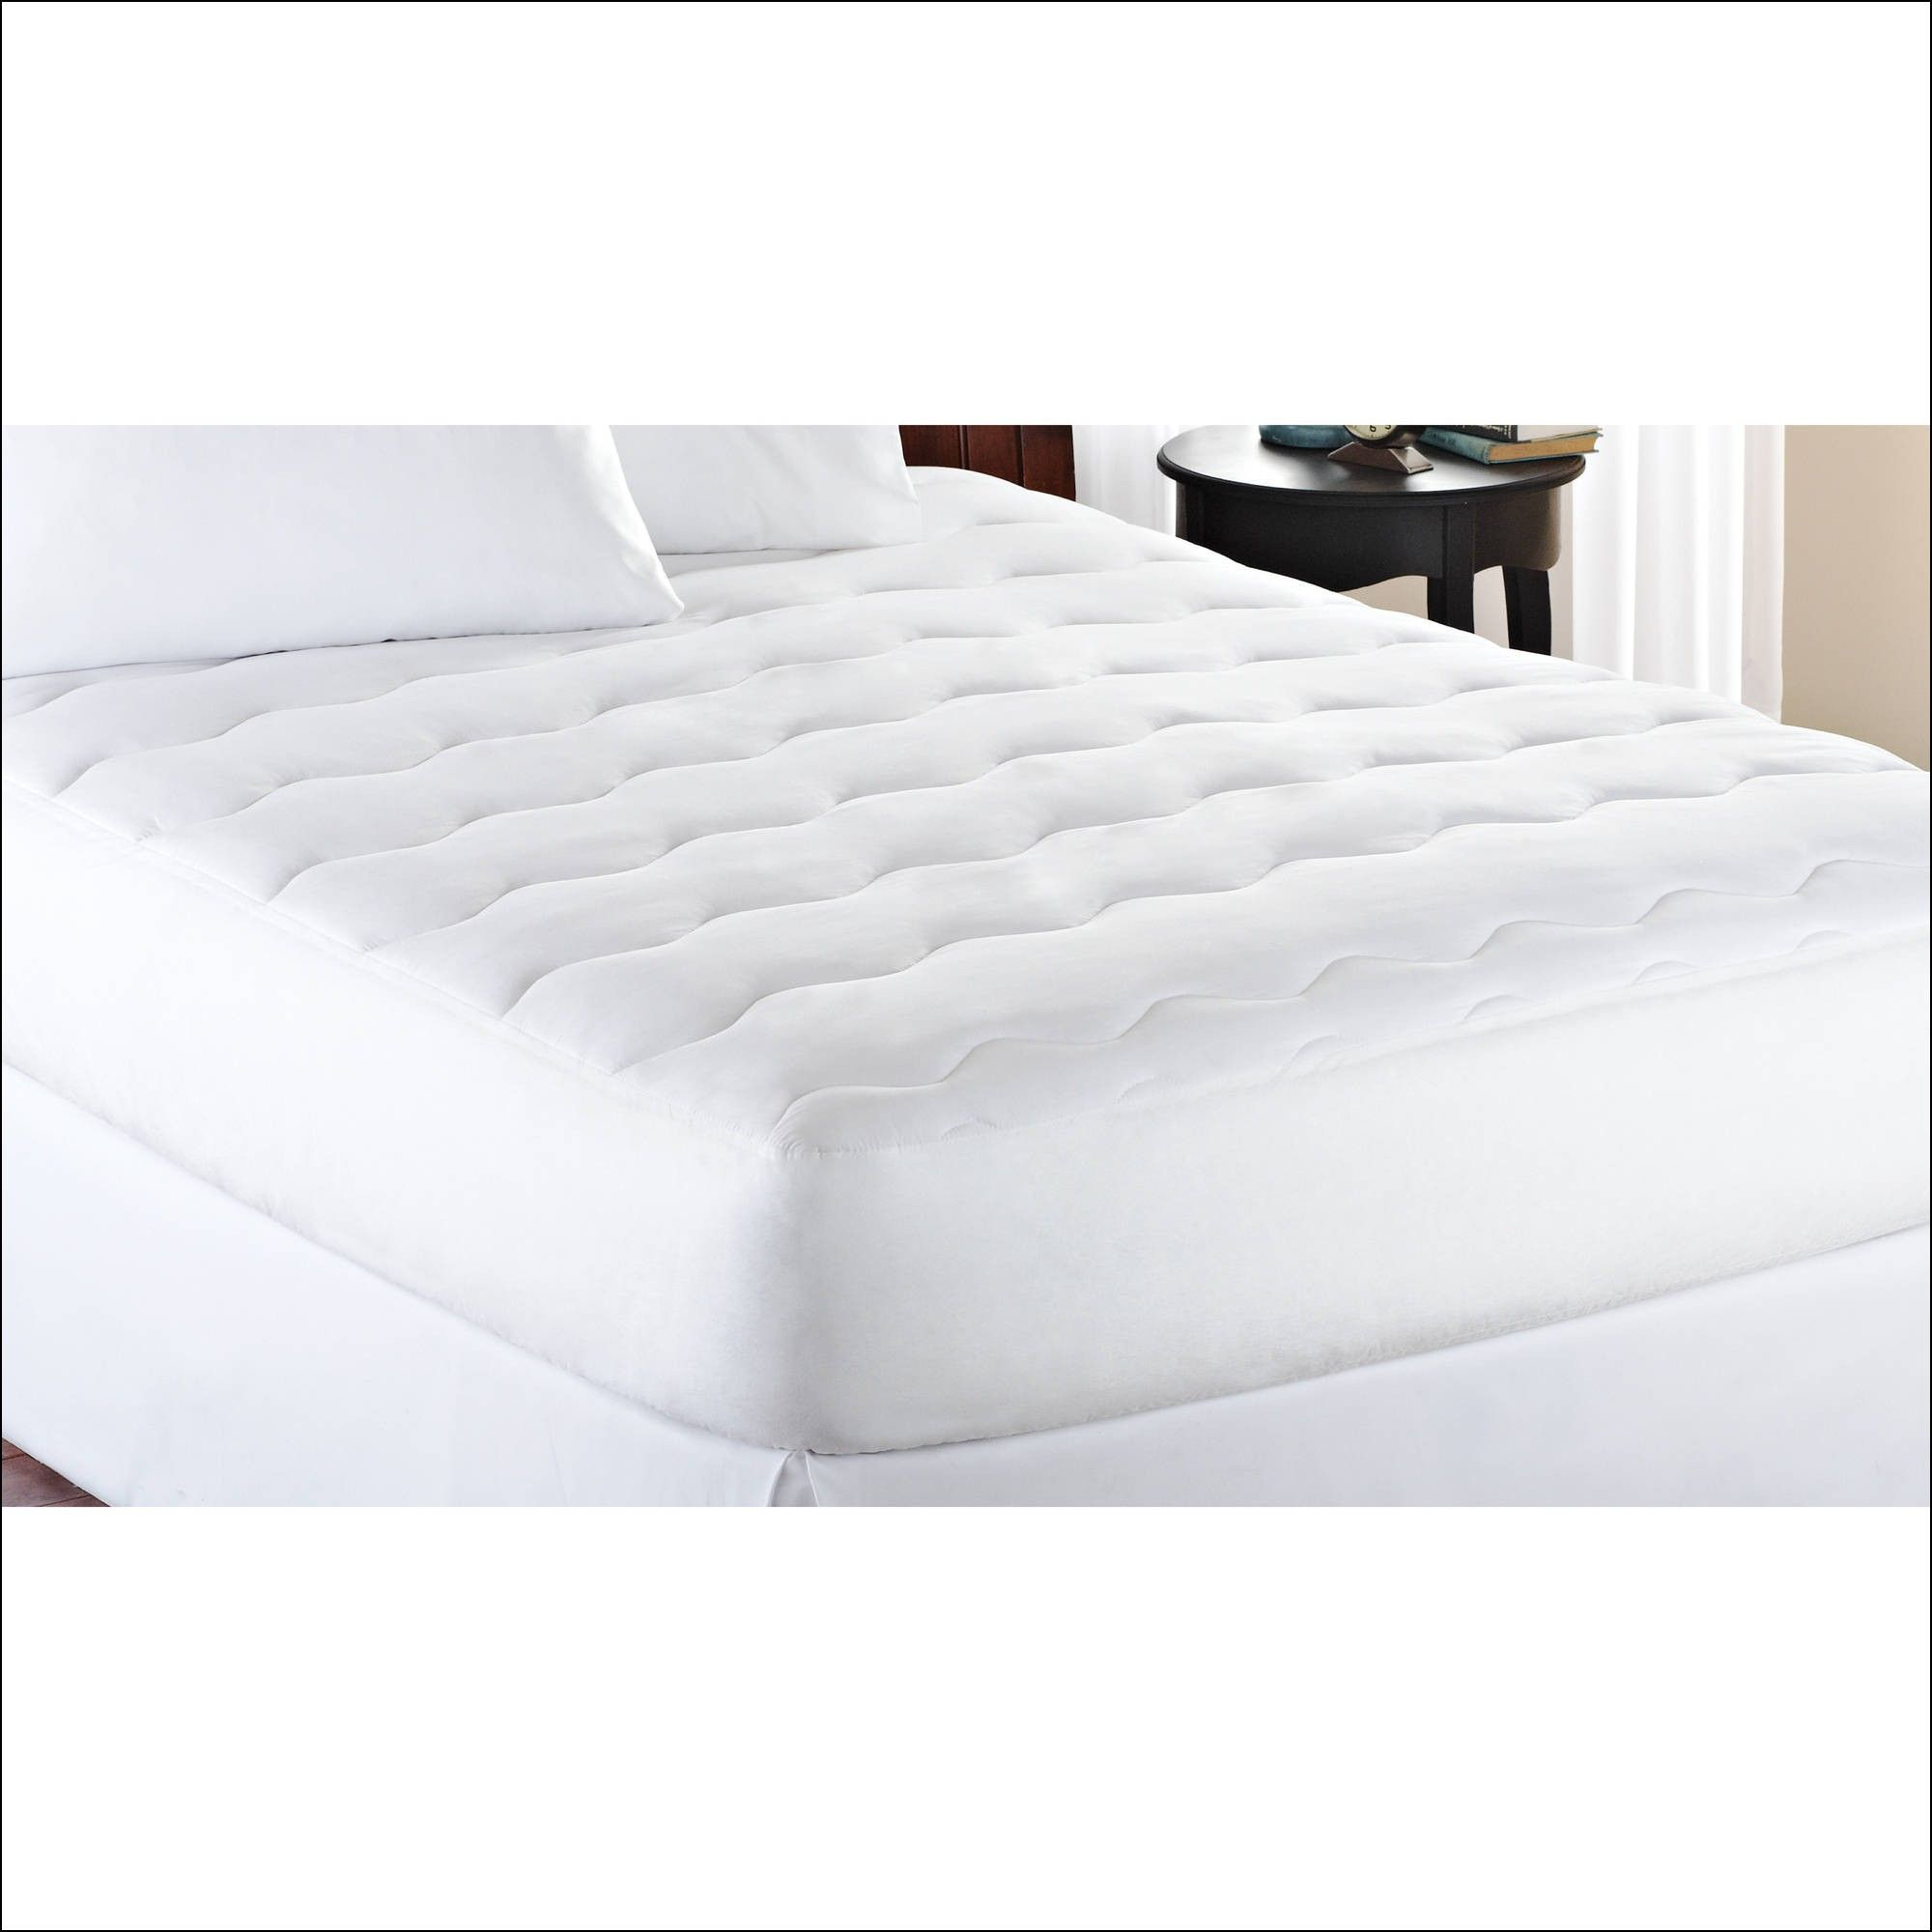 top bath size of mattress xl queen and full pillow amazon twin pad foam mattresses sealy topper bed beyond memory